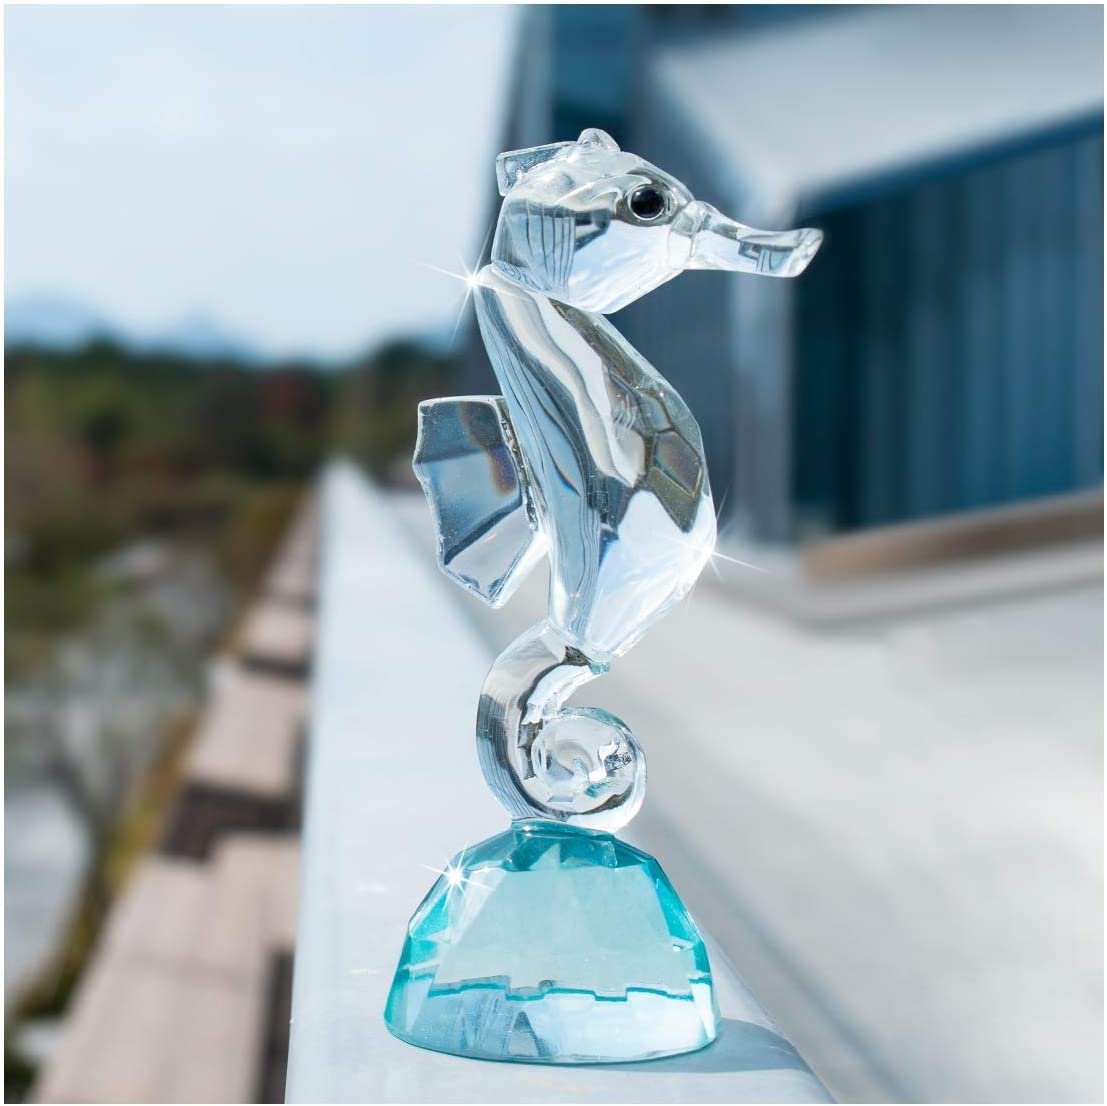 H&D Small Crystal Glass Seahorse Figurine Crystal Hippocampi Ornament for Home Office Decor (3.7-inch)